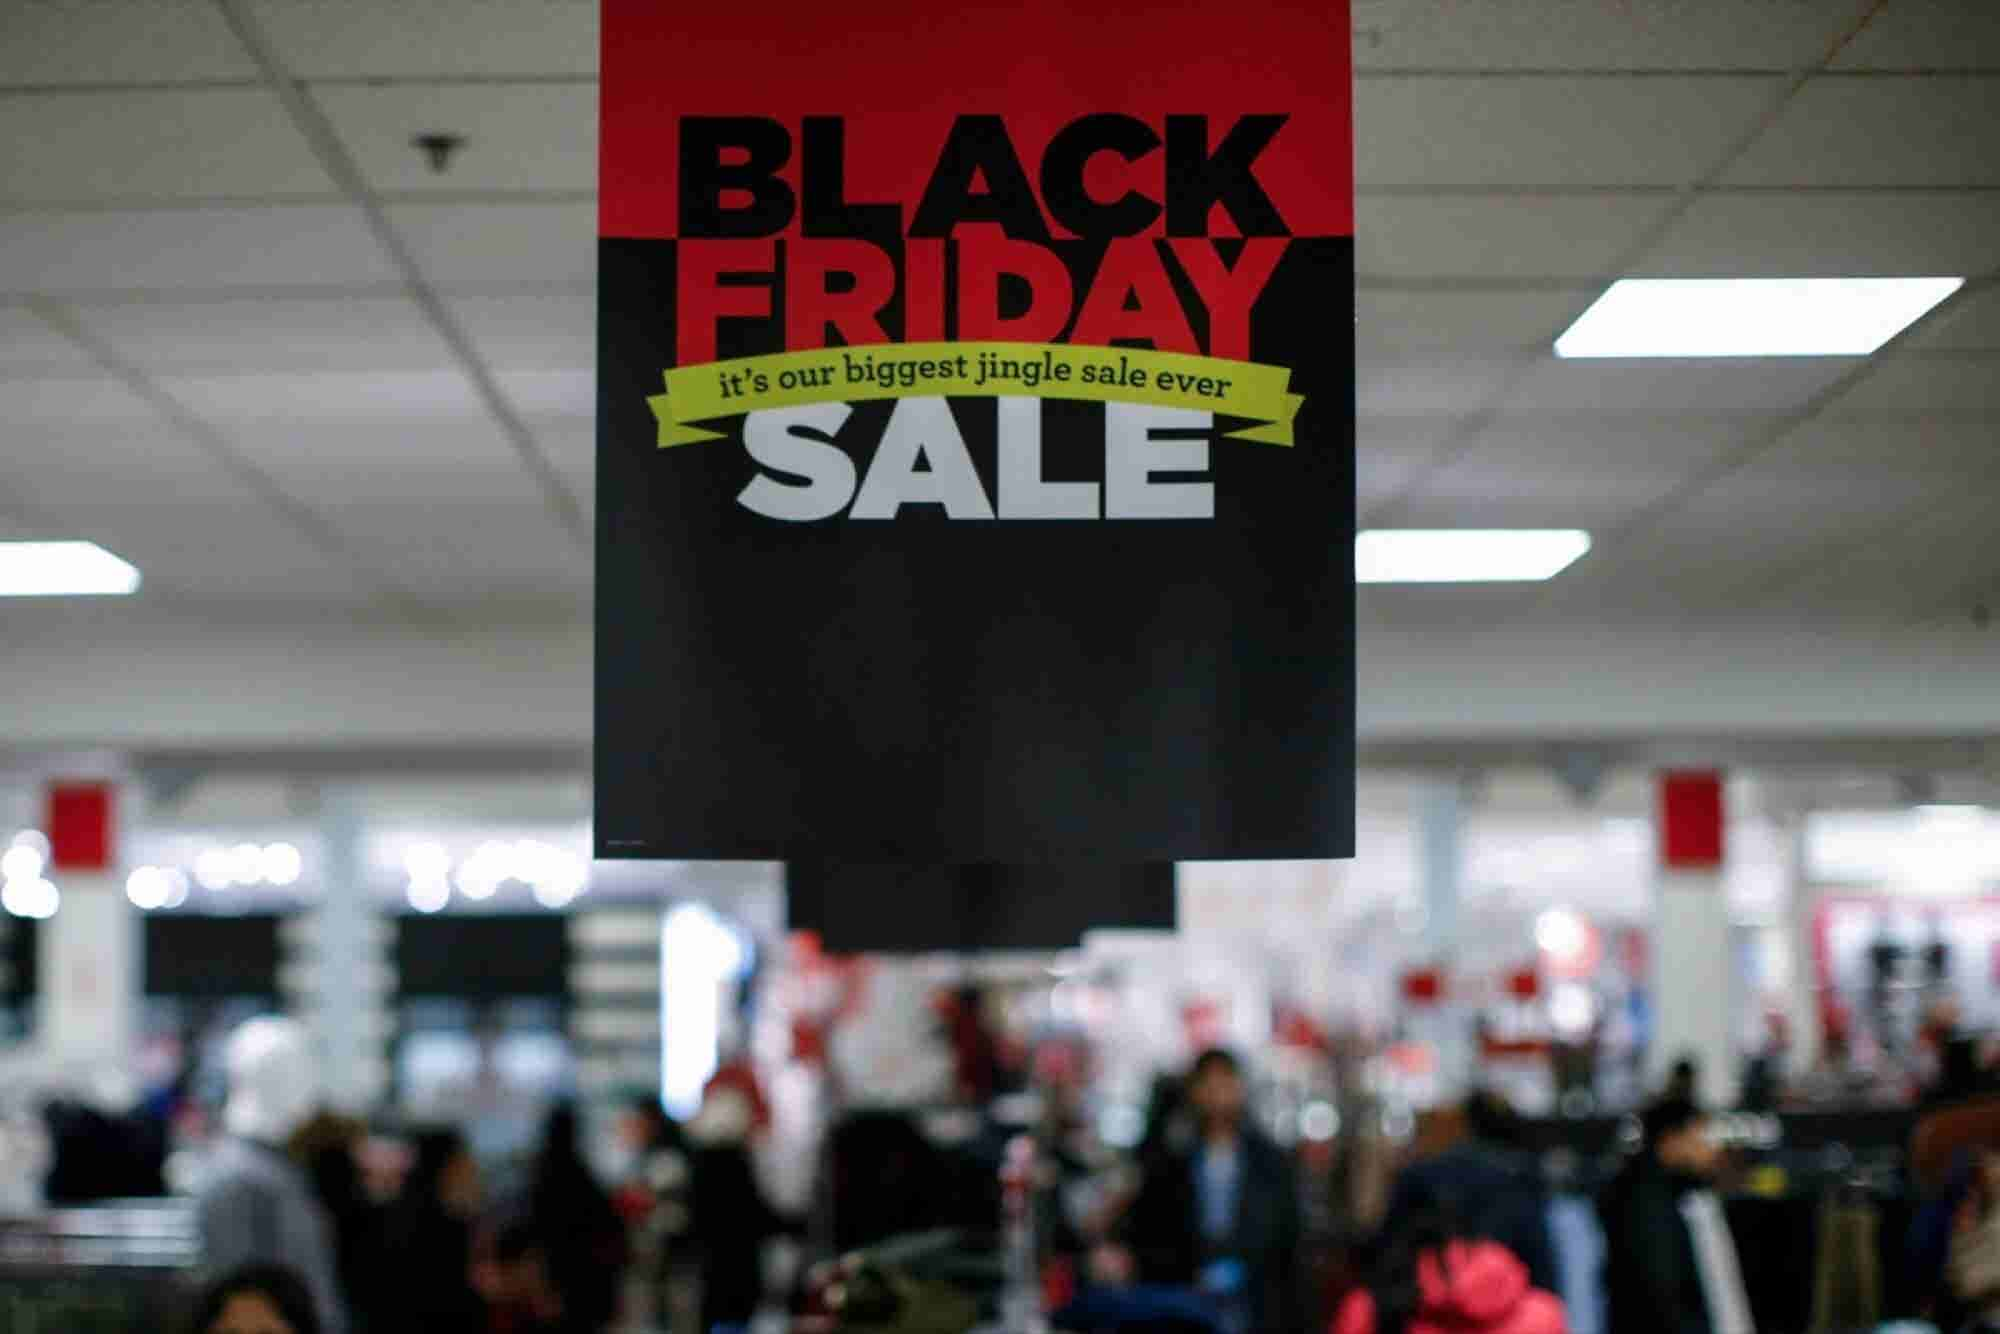 How to Prepare Your Business to Win Big on Black Friday